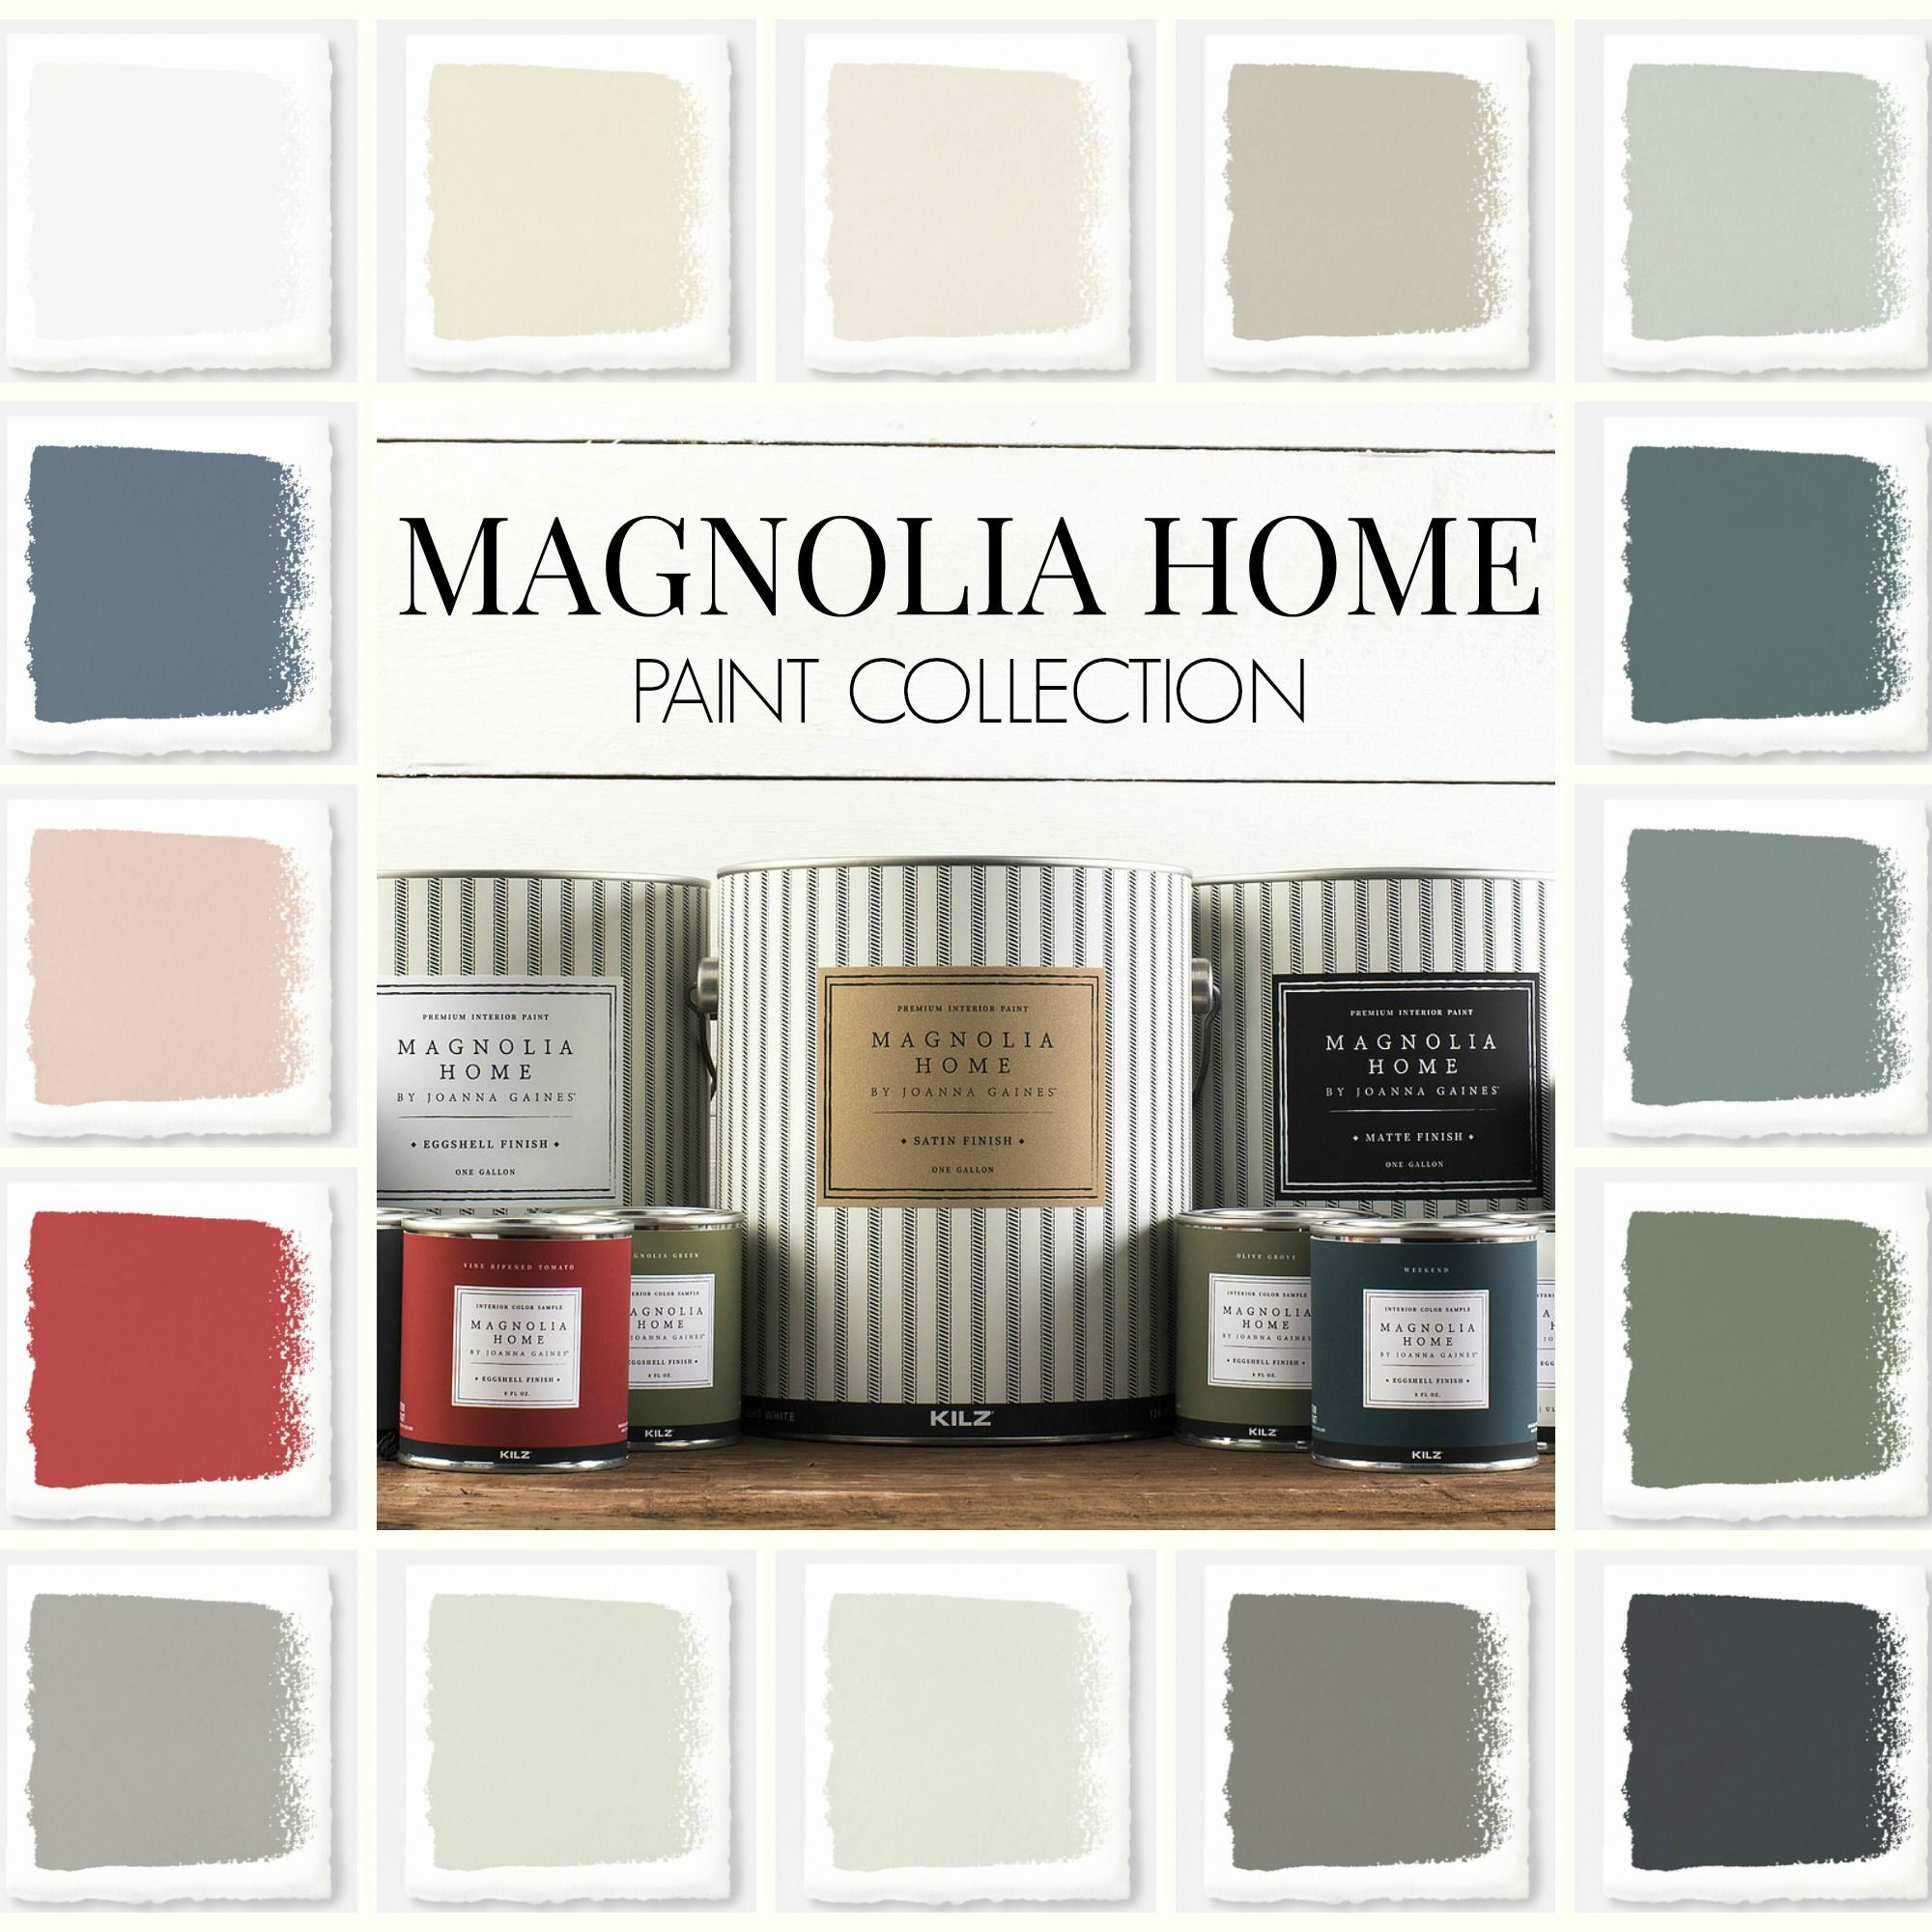 New magnolia home paint collection pinterest kilz for Magnolia home paint colors